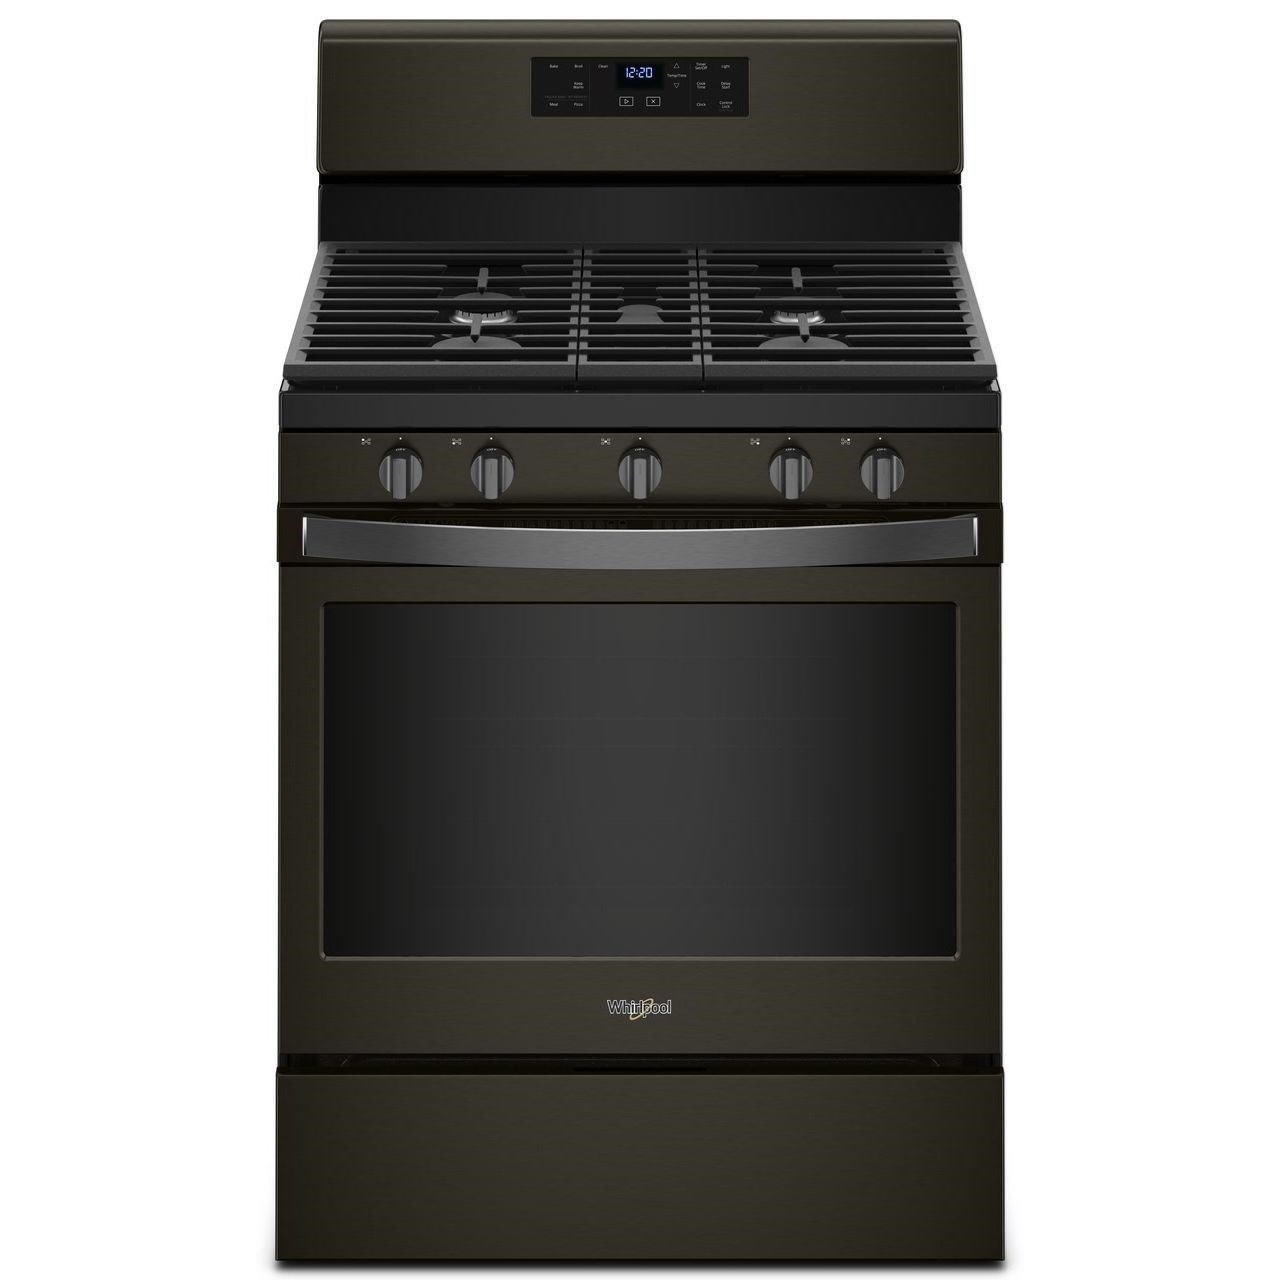 Gas Ranges 5.0 cu. ft. Freestanding Gas Range by Whirlpool at Westrich Furniture & Appliances